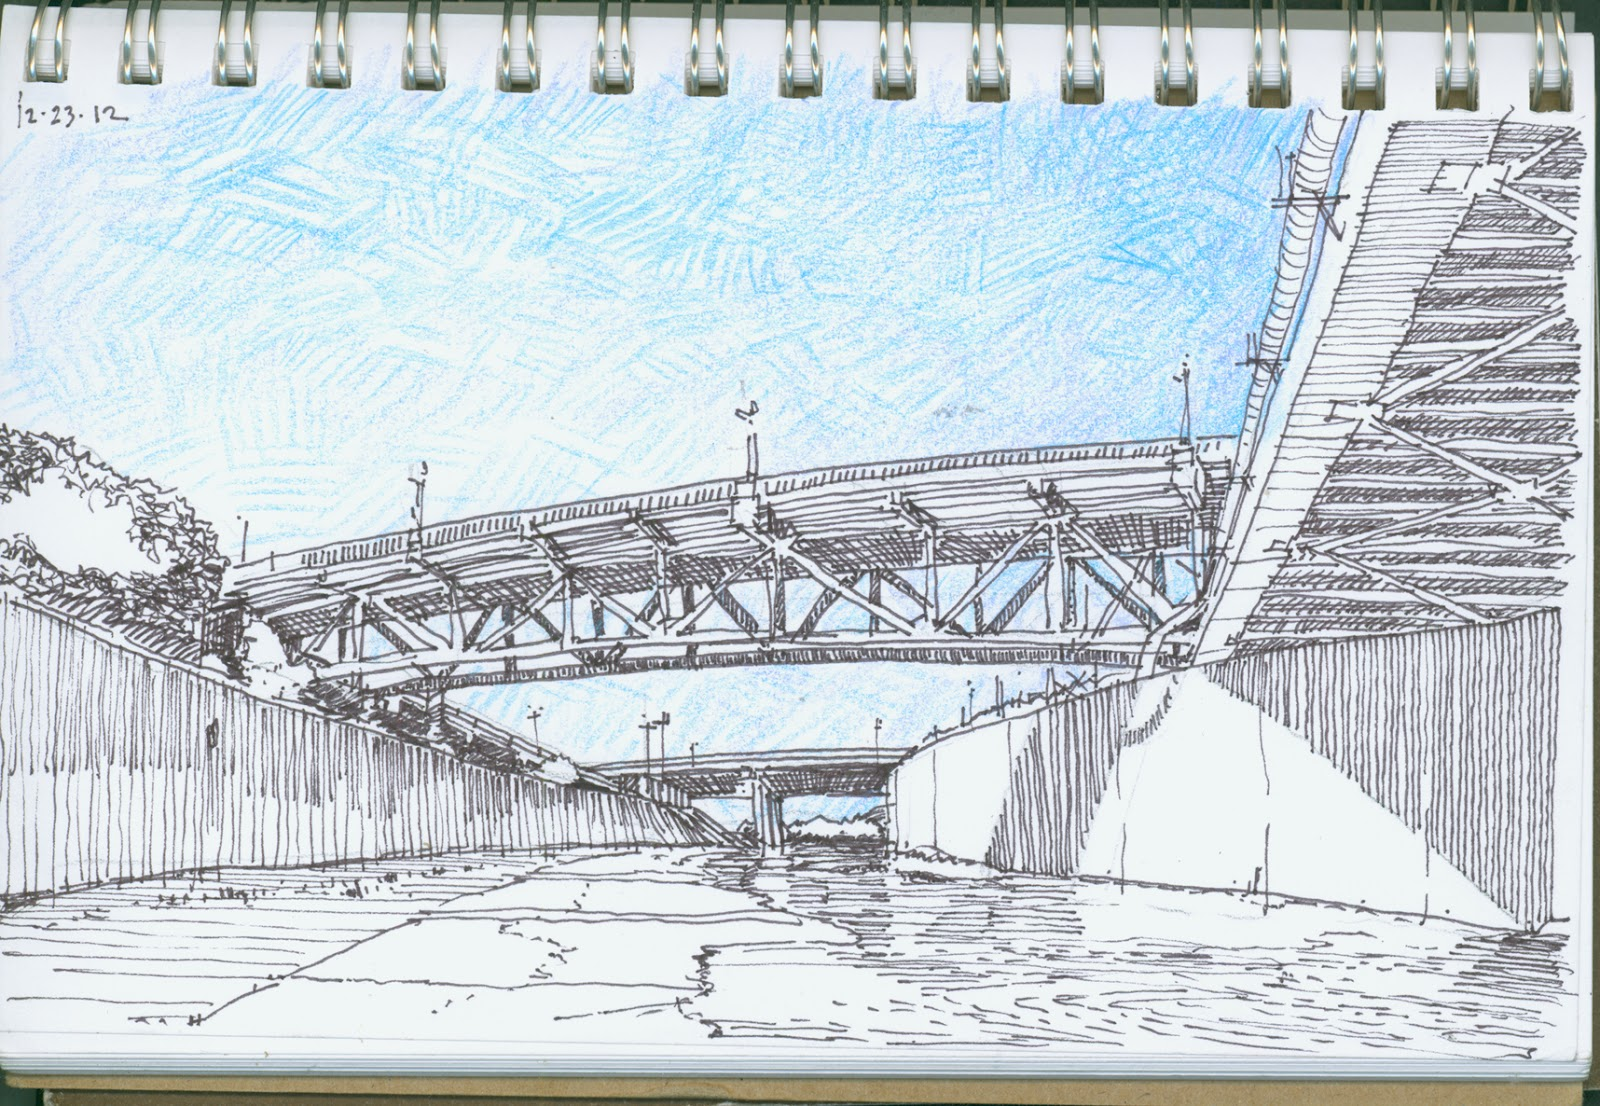 Day 178 drawing - Under the Bridge | drawing a day